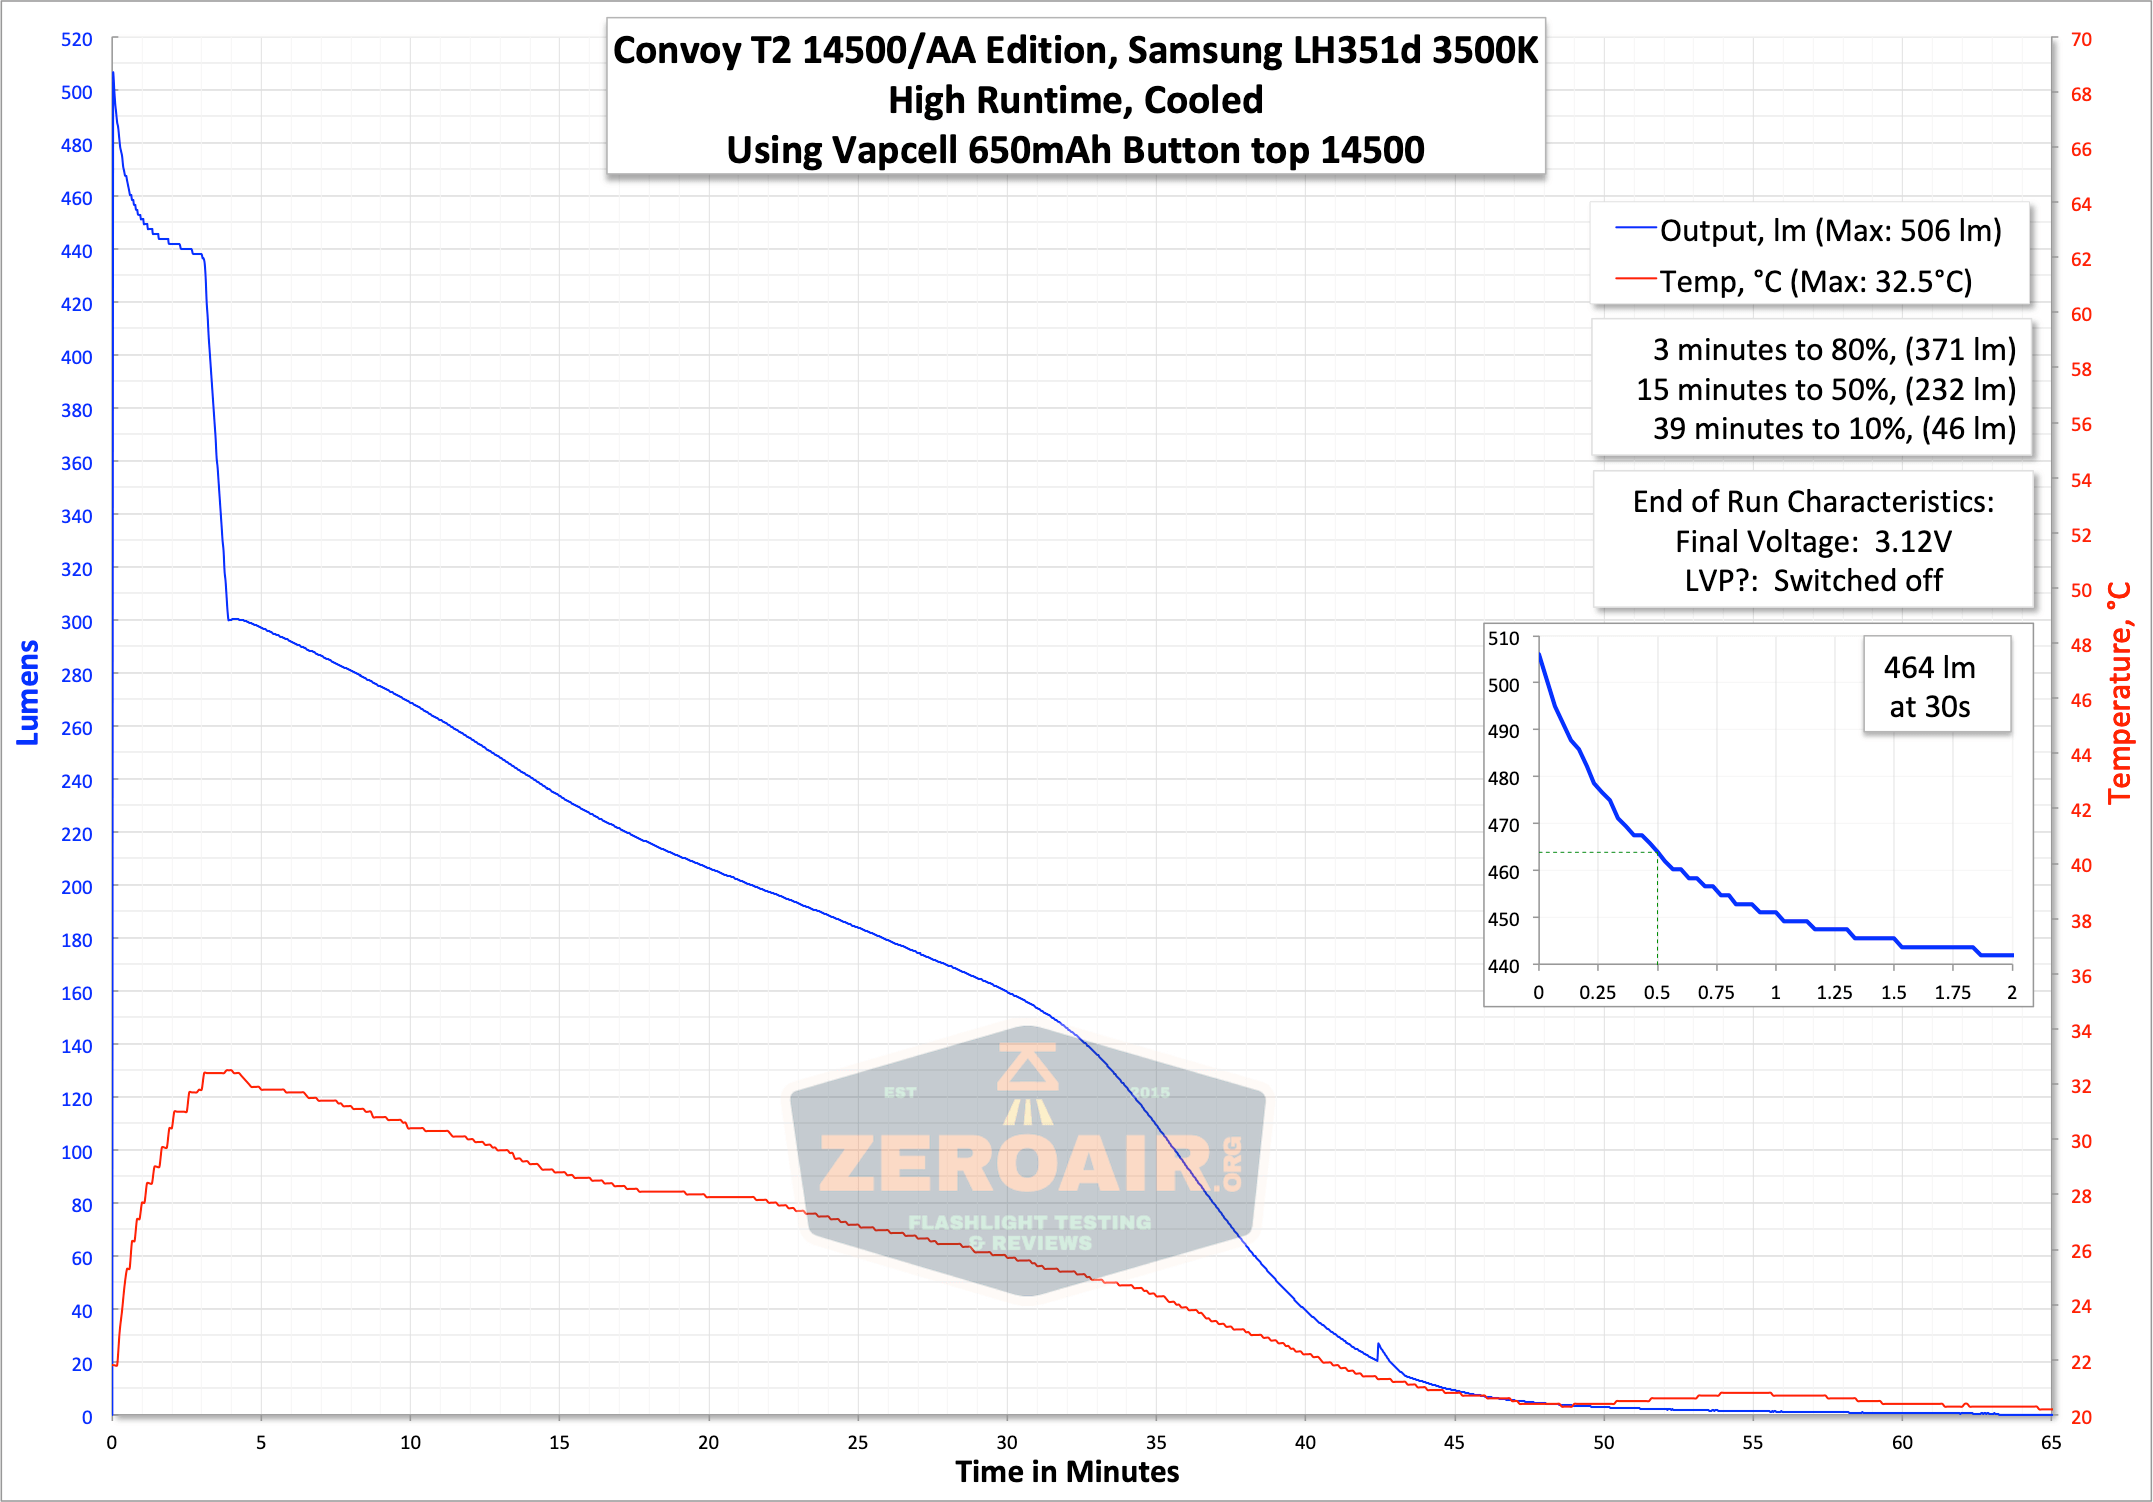 convoy t2 updated 14500/AA flashlight 14500 runtime graph high